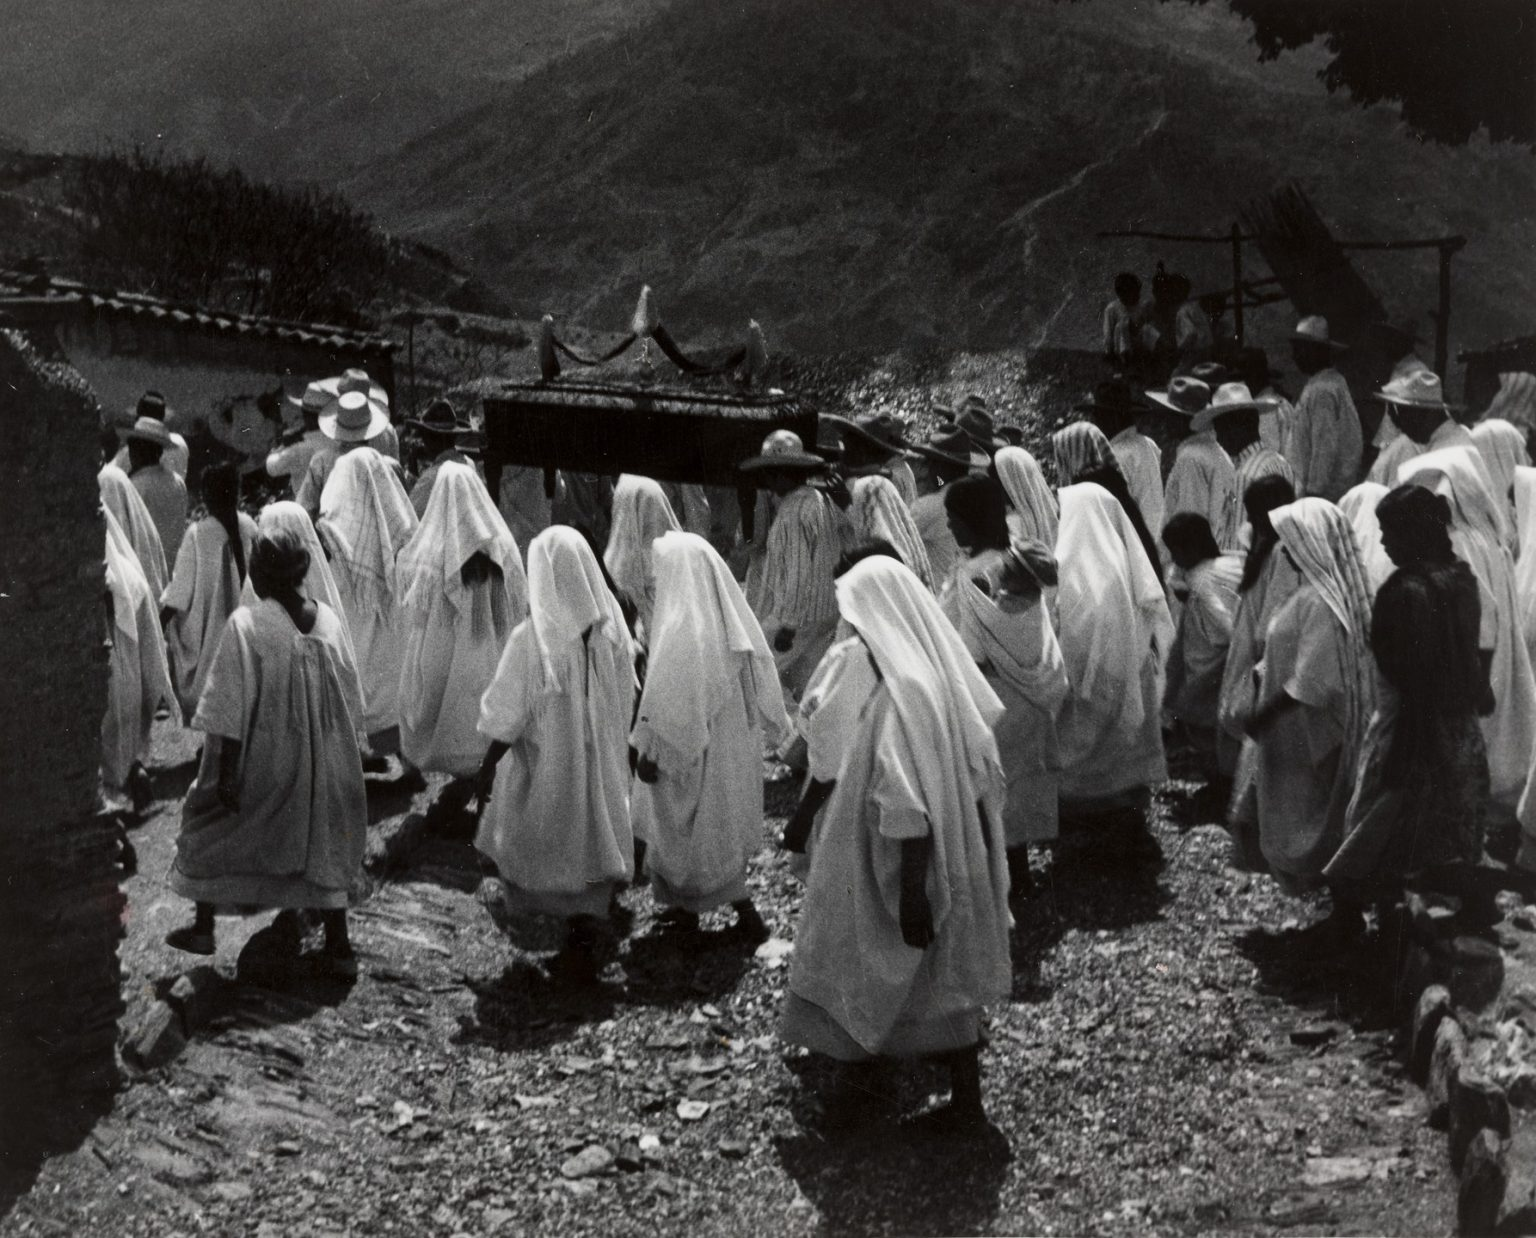 Old photo of a grief procession